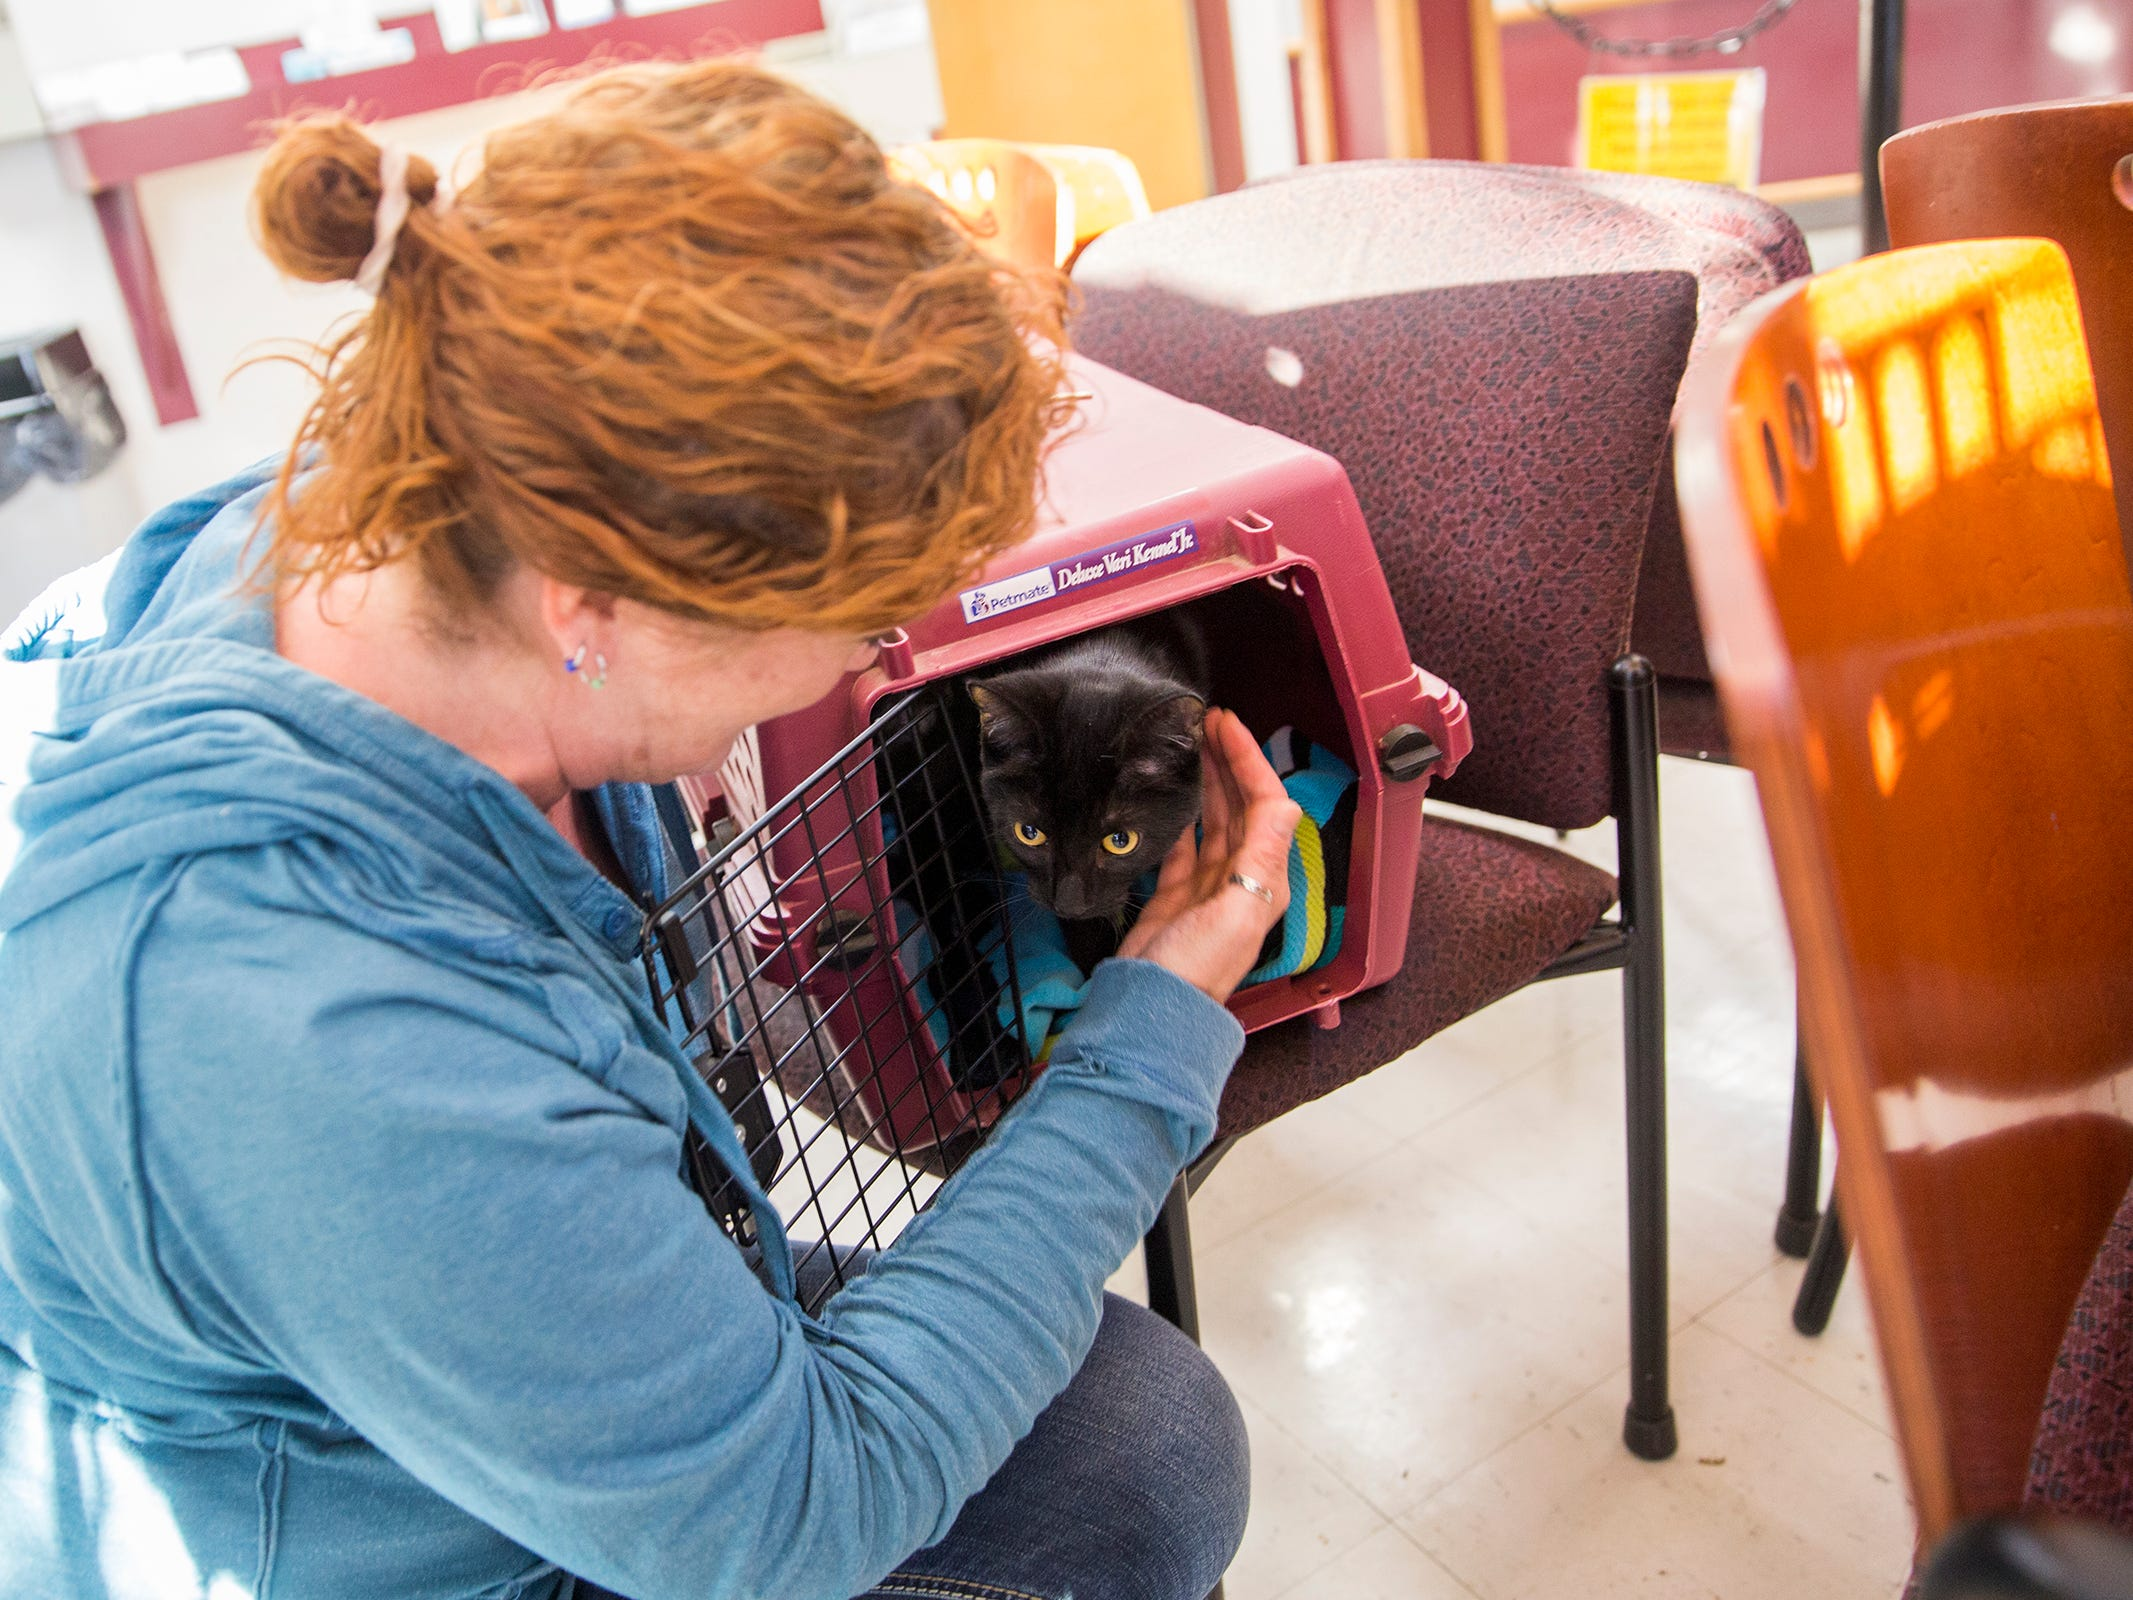 Pan Learned and one of two cats she adopted at the Willamette Humane Society in Salem on Monday, Dec. 31, 2018. She received a gift certificate for the adoption at Christmas.